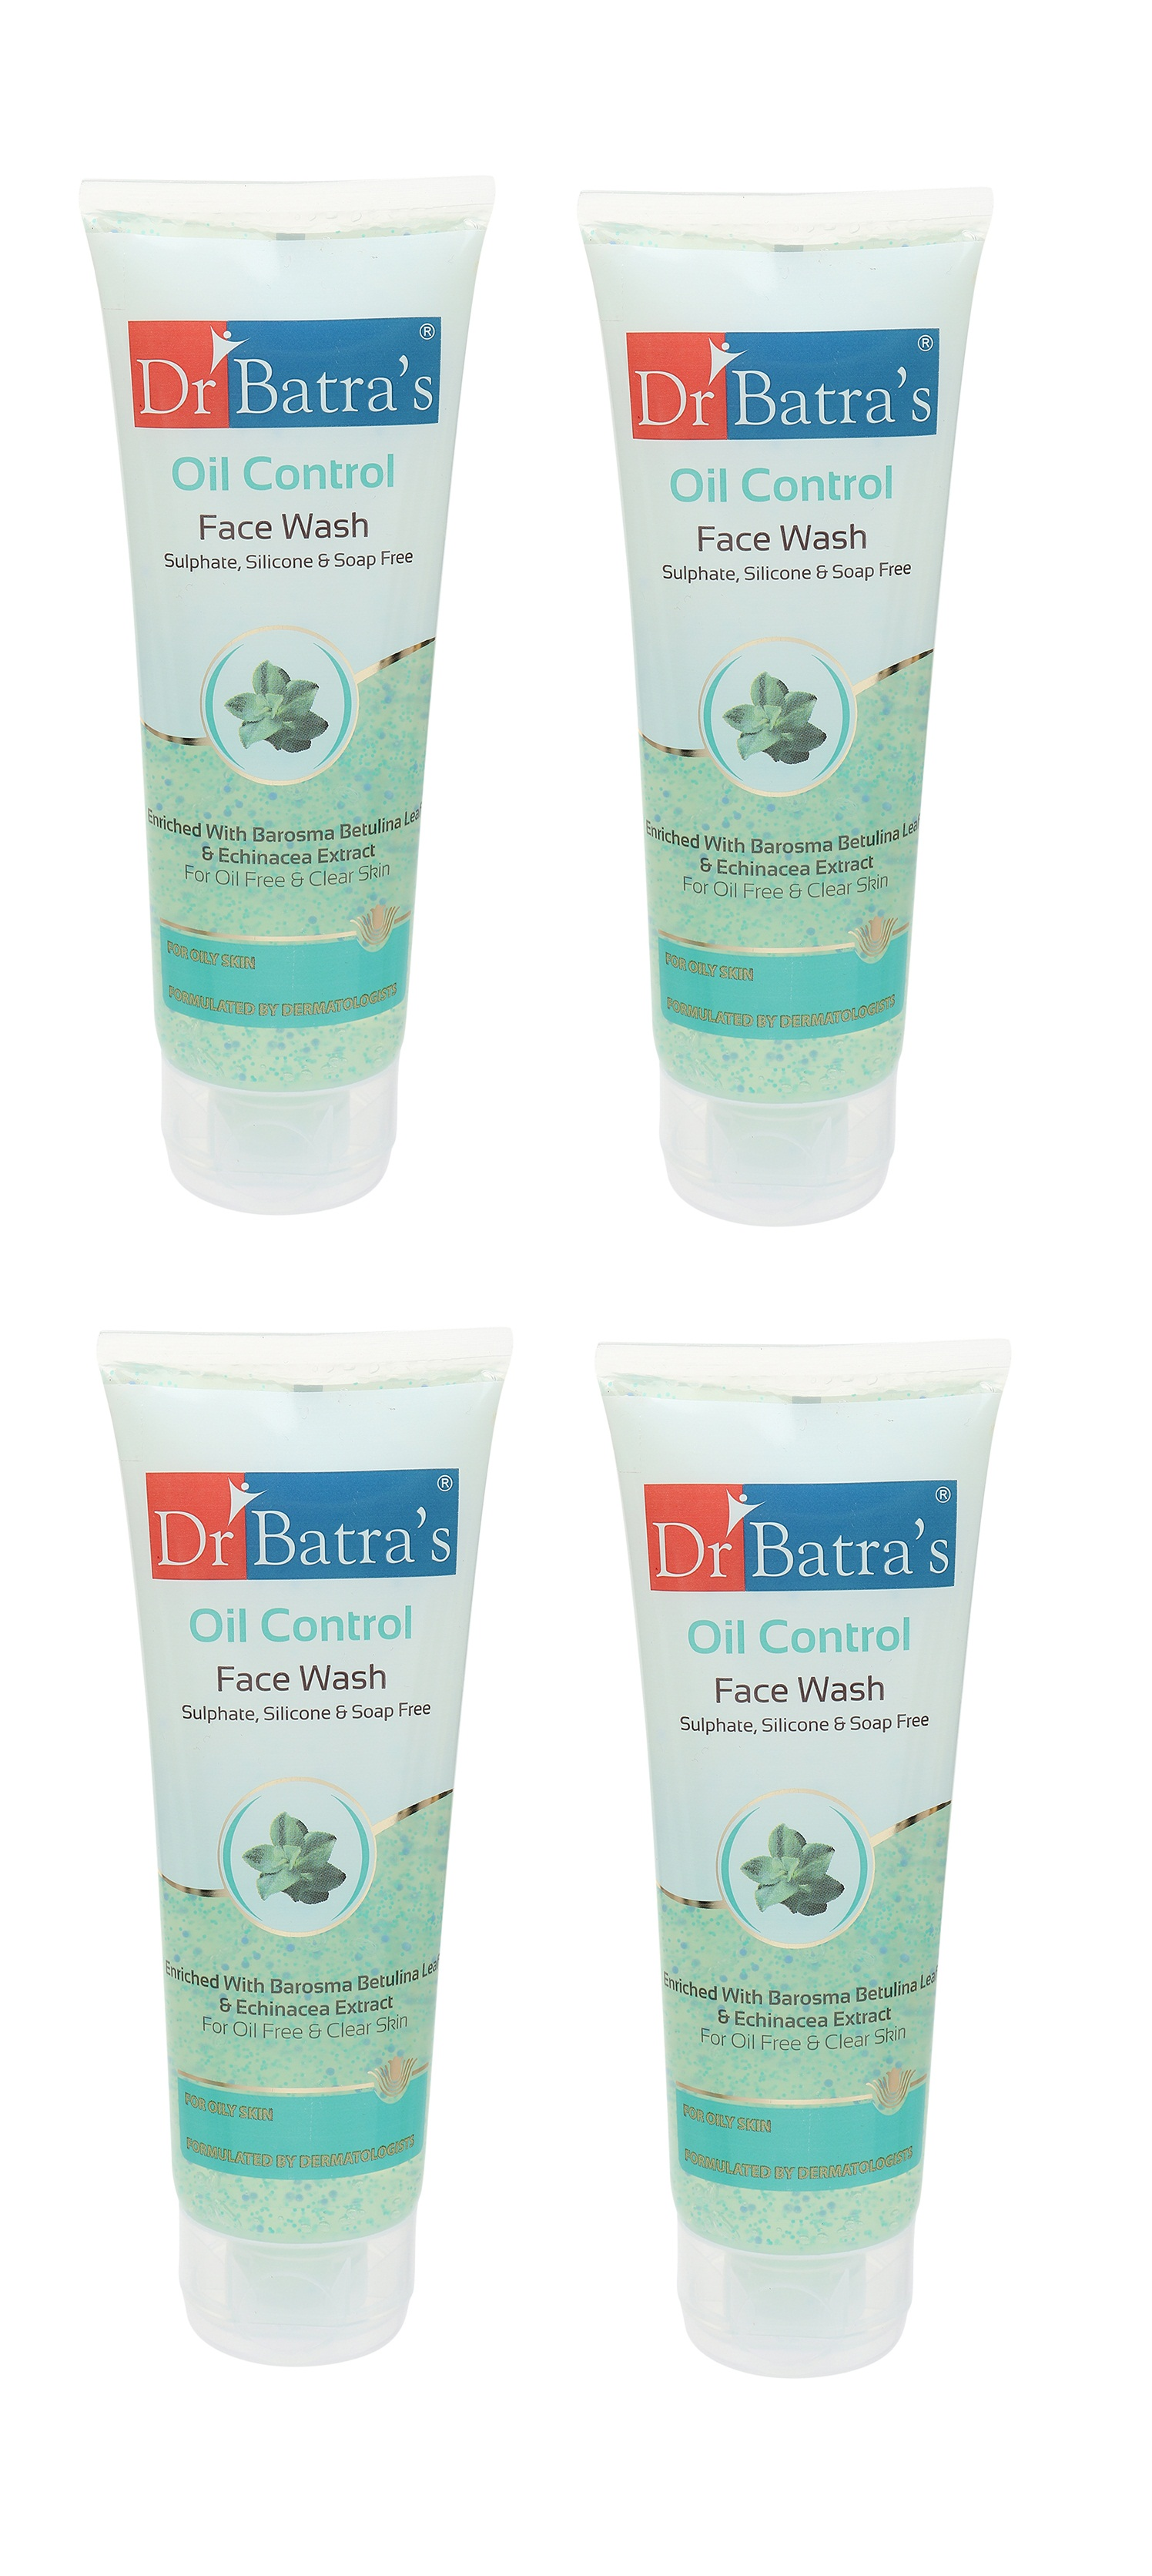 Dr Batra's | Dr Batra's Oil Control Face Wash Sulphate, Silicone & Soap Free Enriched With Barosma Betulina Leaf & Echinancea Extract For Oil Free & Clear Skin - 100 gm (Pack of 4)